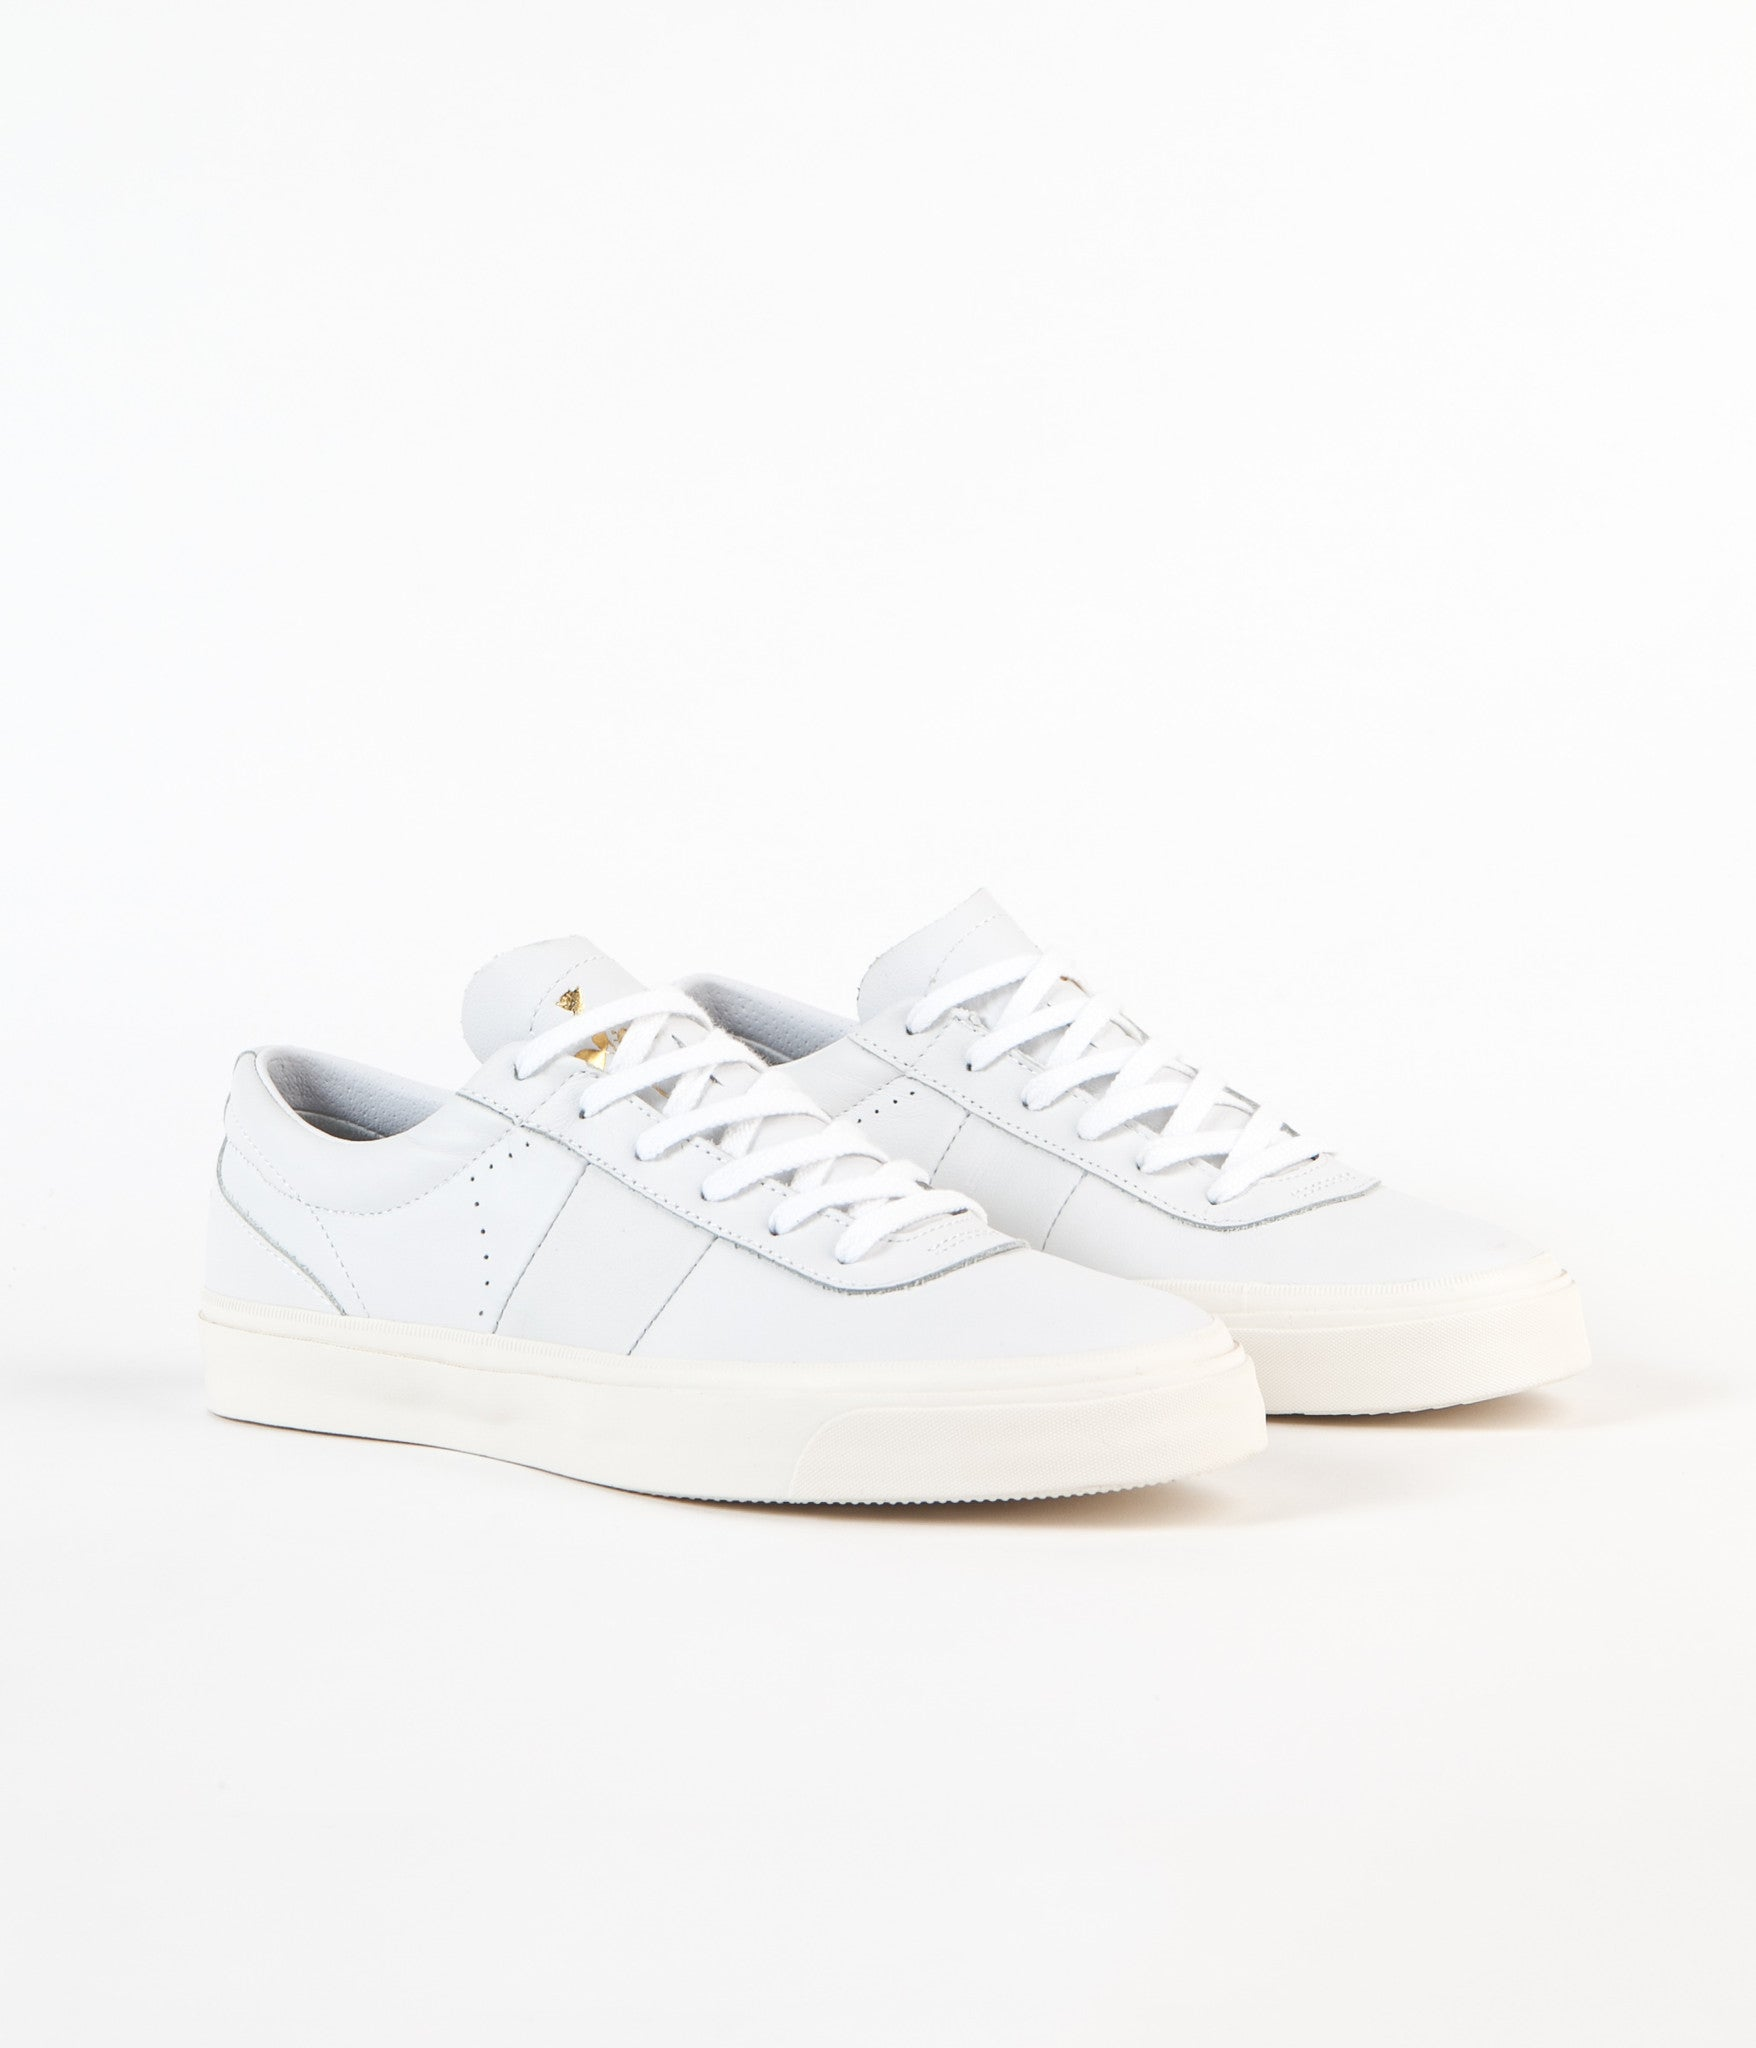 Converse One Star Ox CC Sage Elsesser Shoes White White